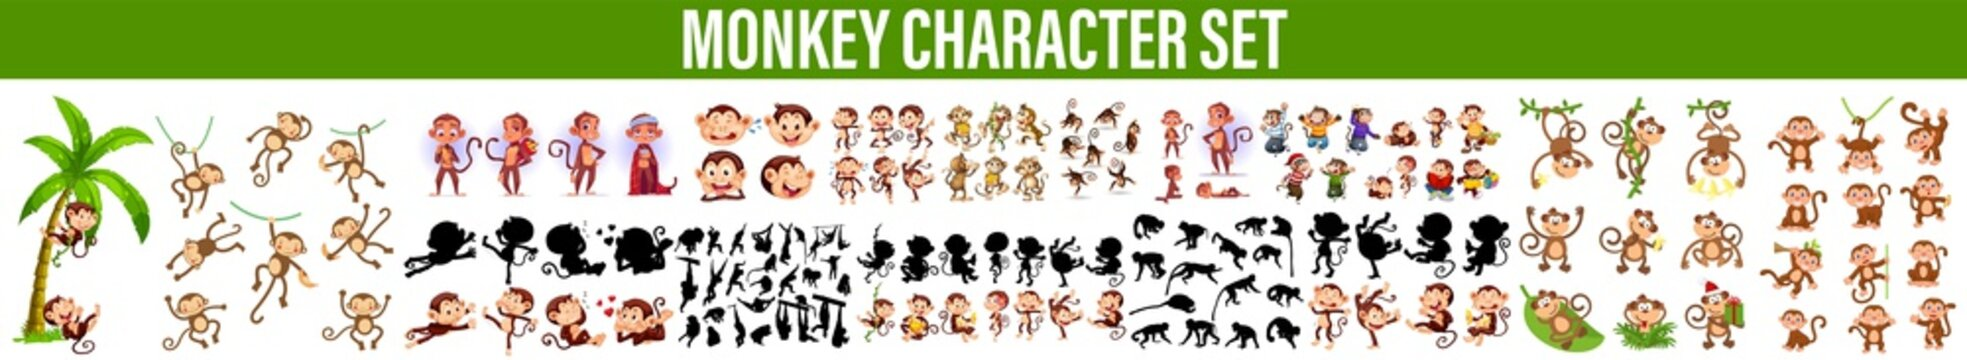 monkeys doing different actions illustration, Cute Monkey Character Set. Vector Illustrations Of A In Various Poses, Set Vector Stock Illustrations isolated emoji character cartoon monkey stickers